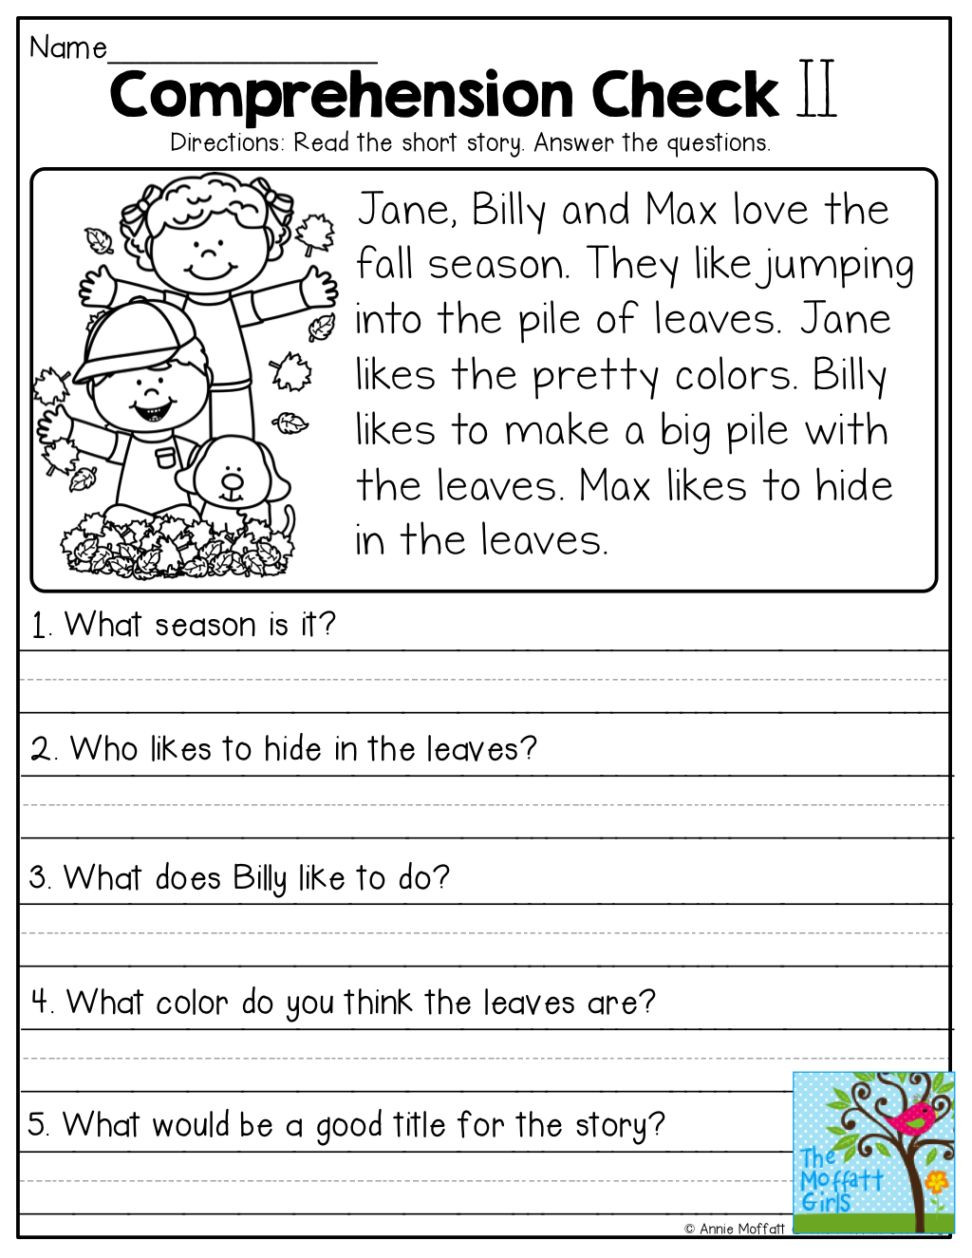 Free 1st Grade Comprehension Worksheets 38 Innovative Reading Prehension Worksheets Design Ideas